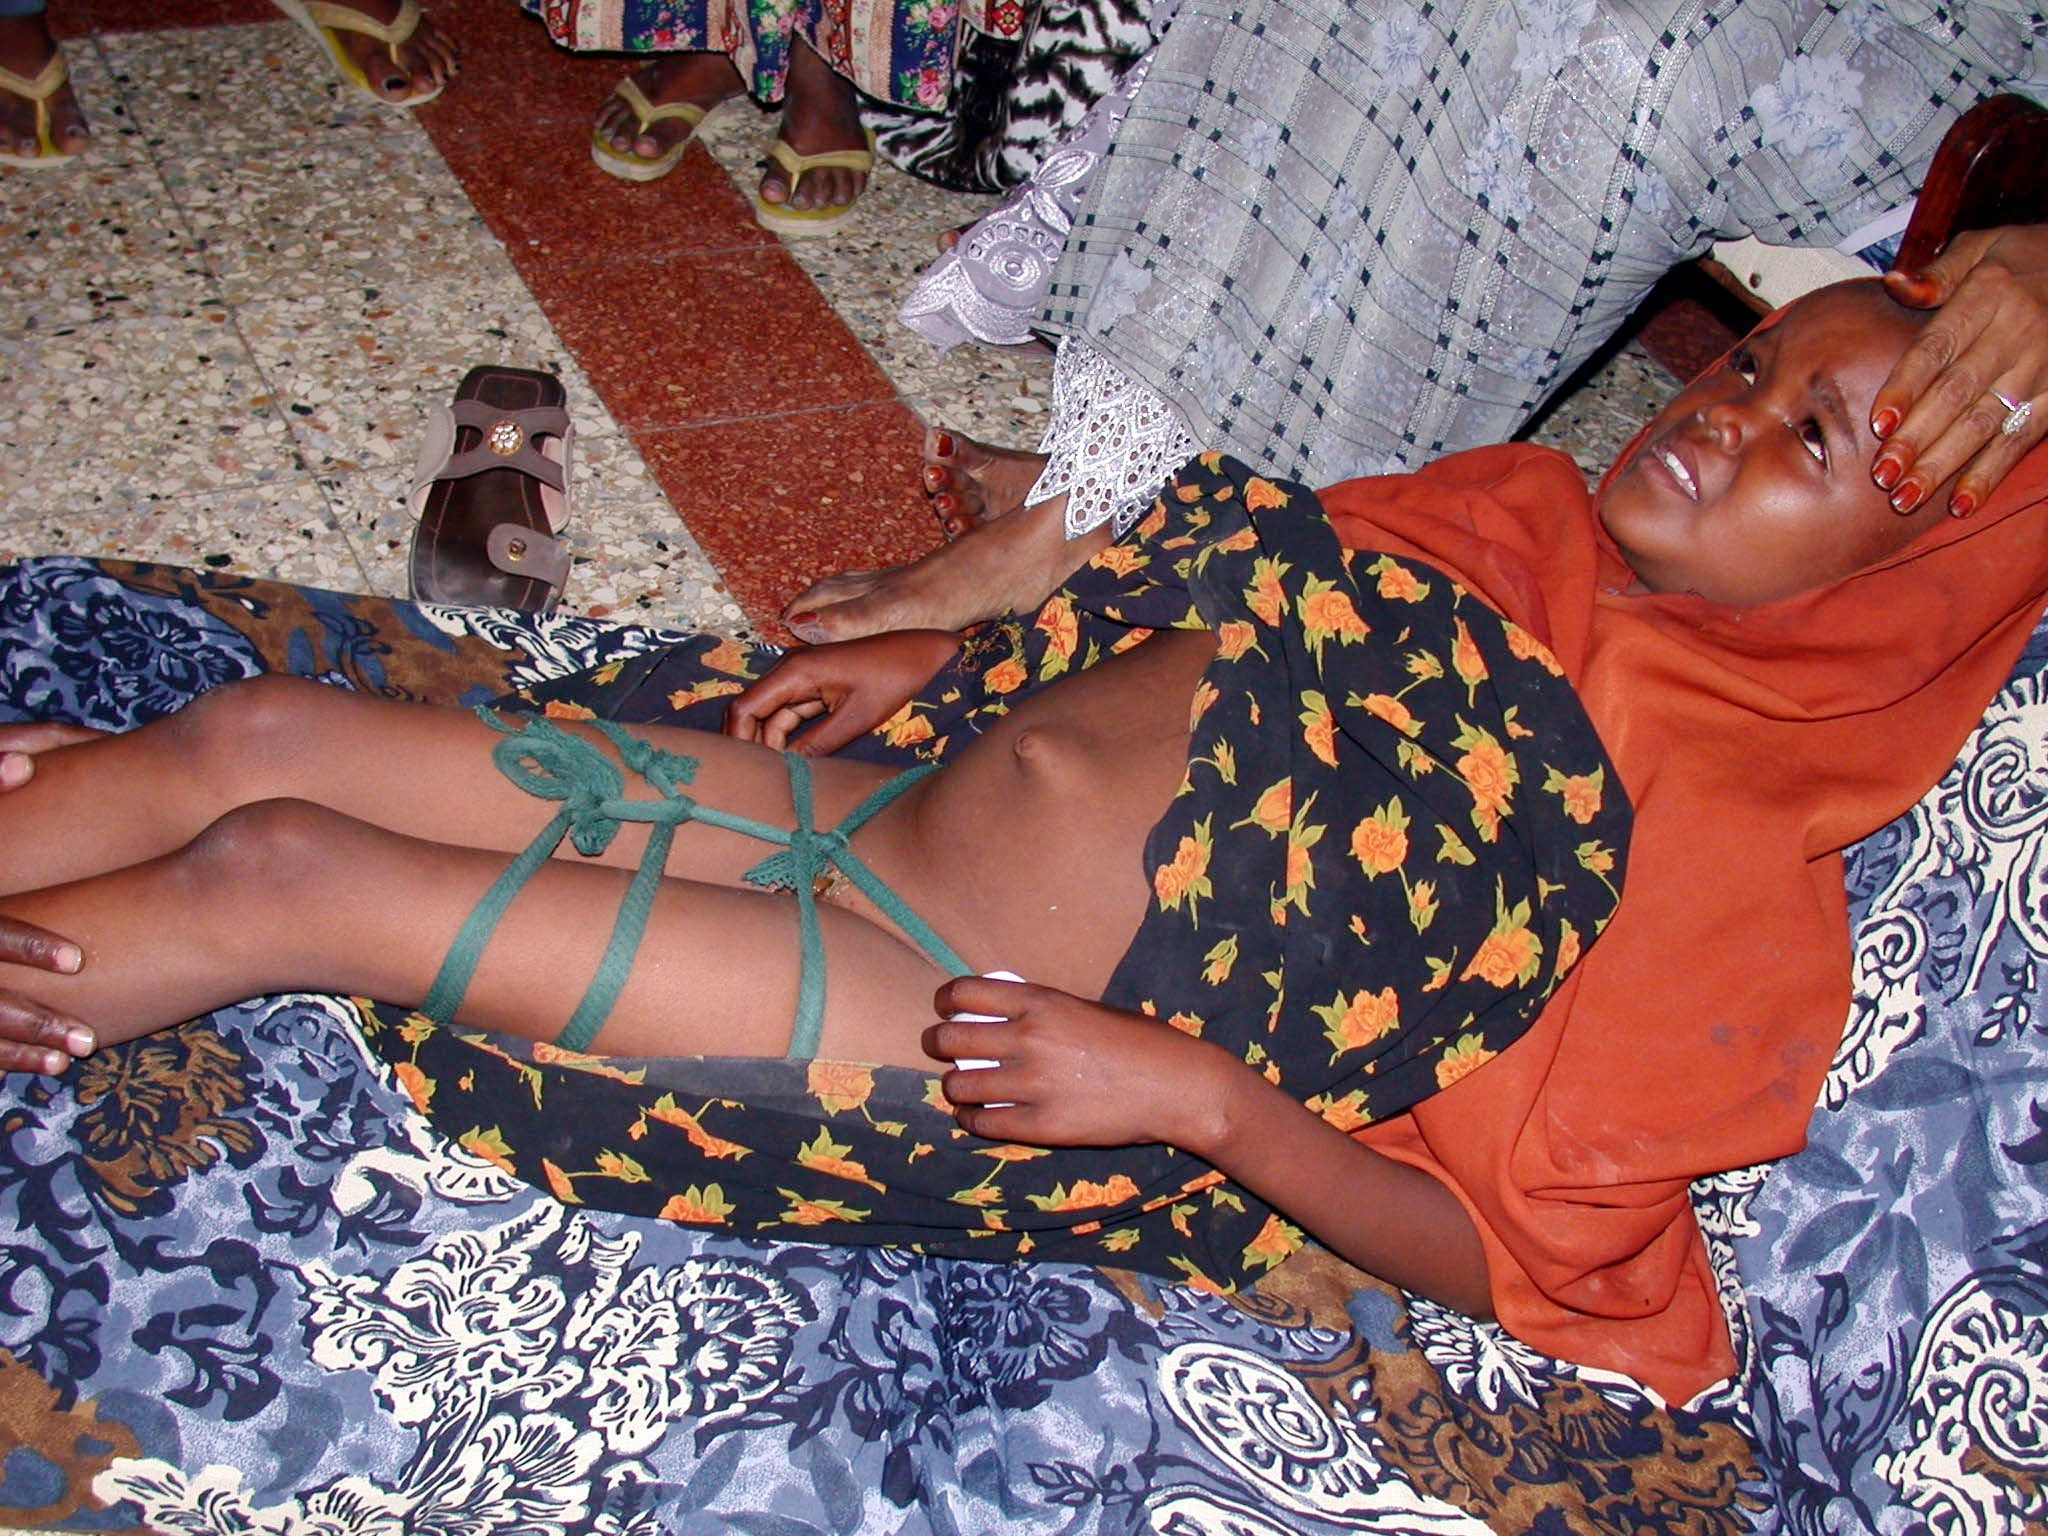 pix for > healed female circumcision female circumcism pix for > healed female circumcision